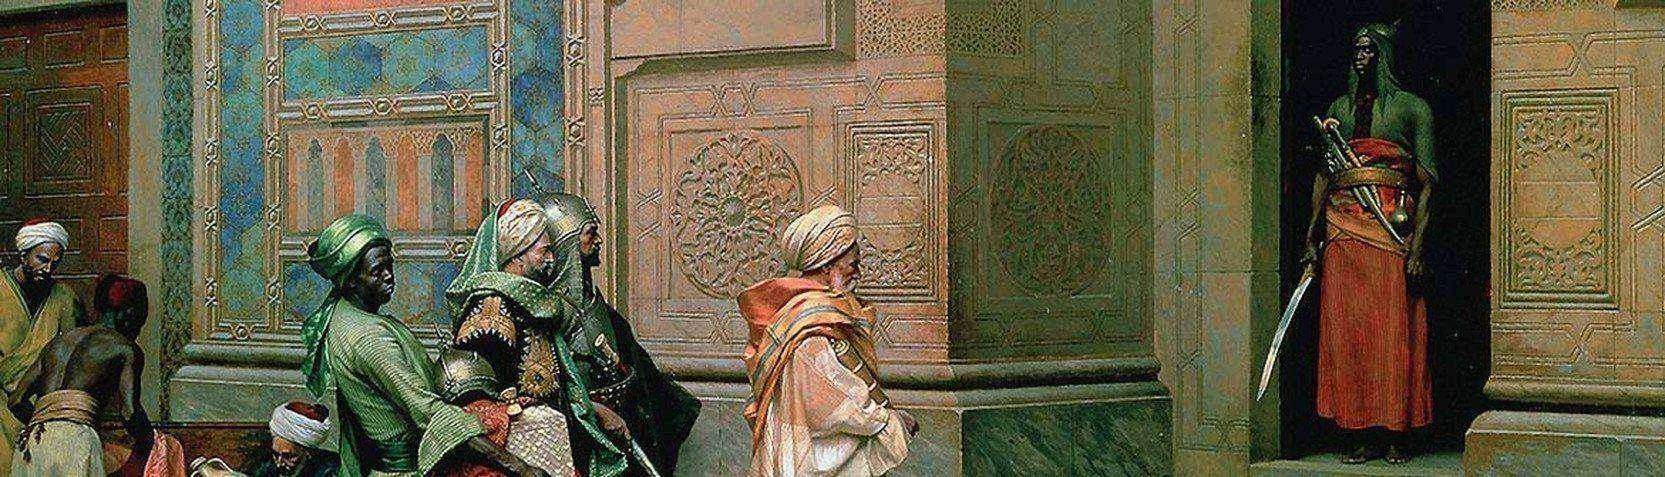 Collections - Orientalism